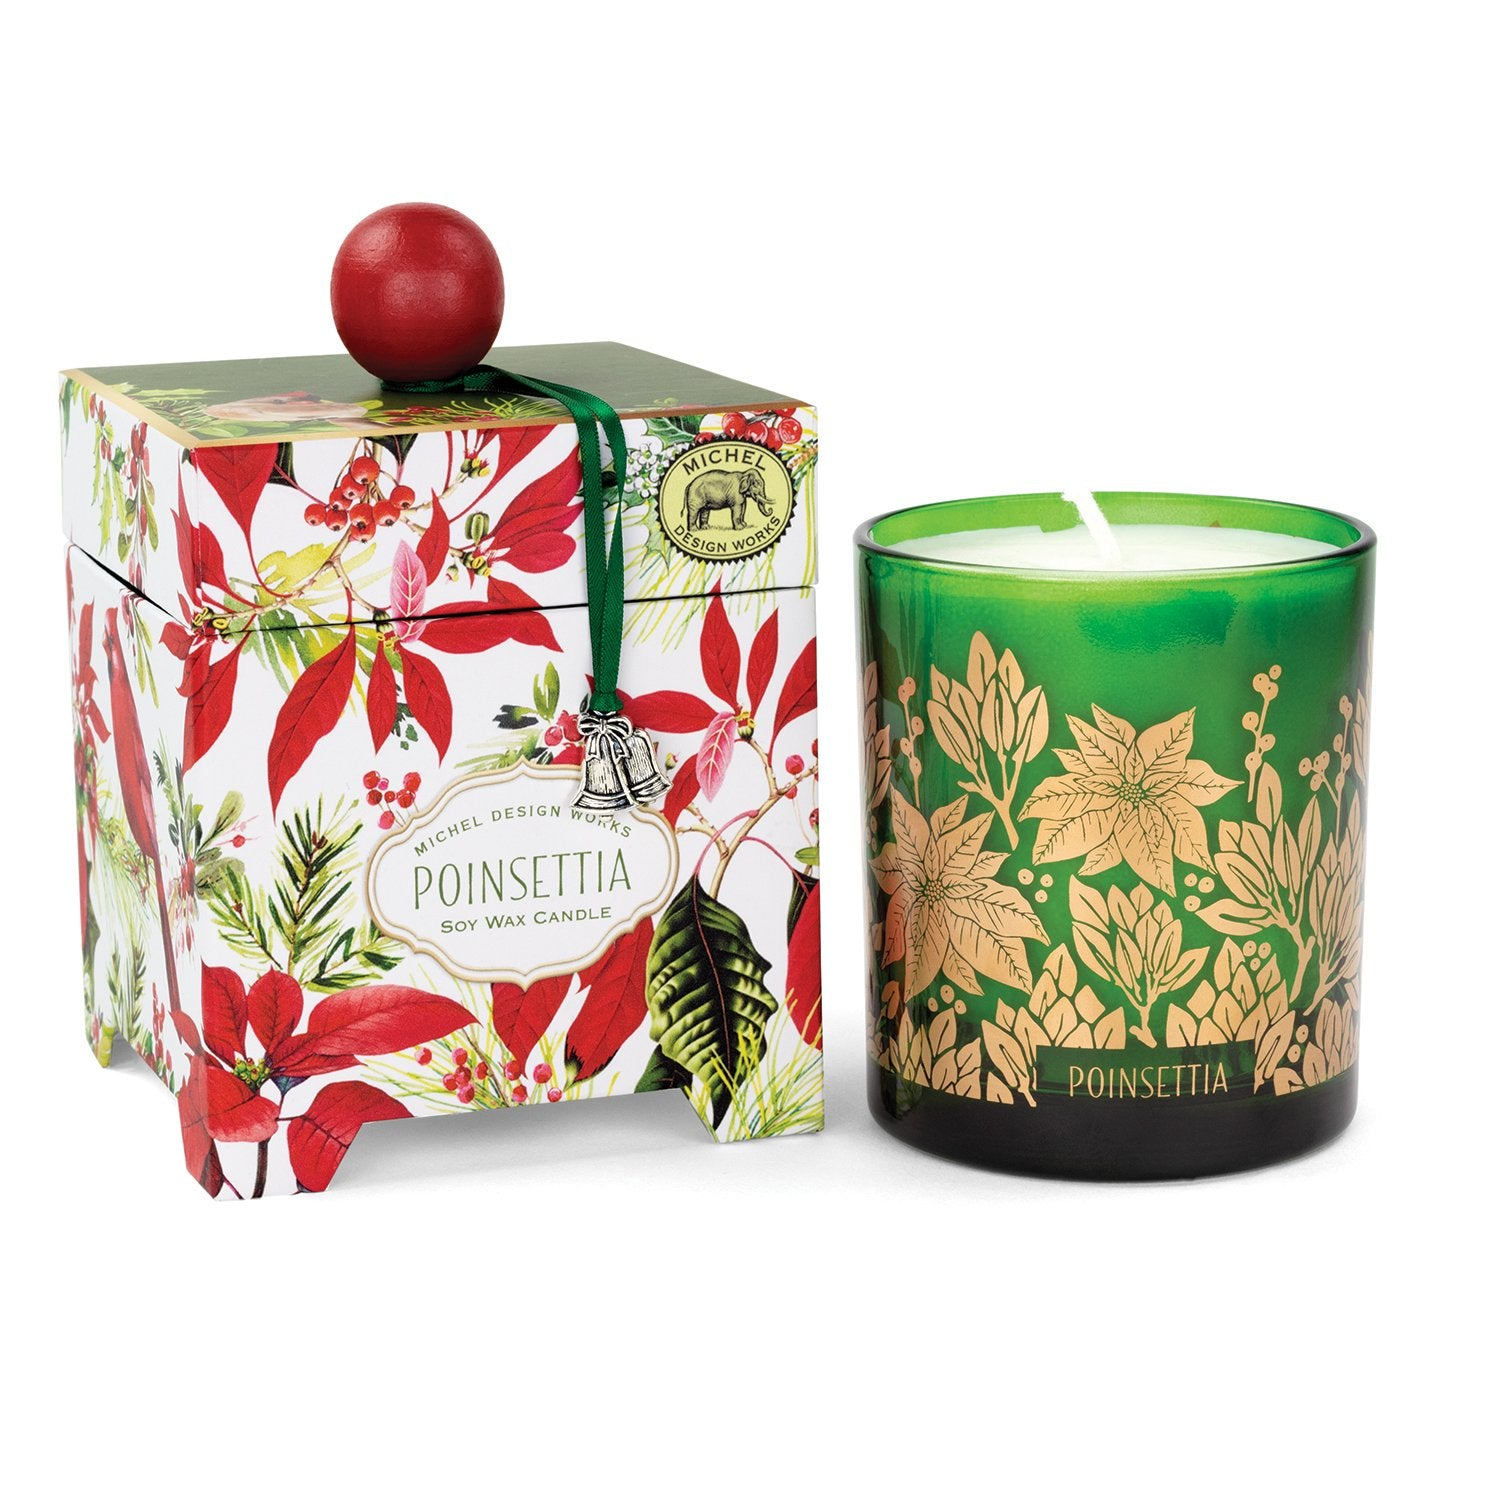 Poinsettia 14 oz. Soy Wax Candle